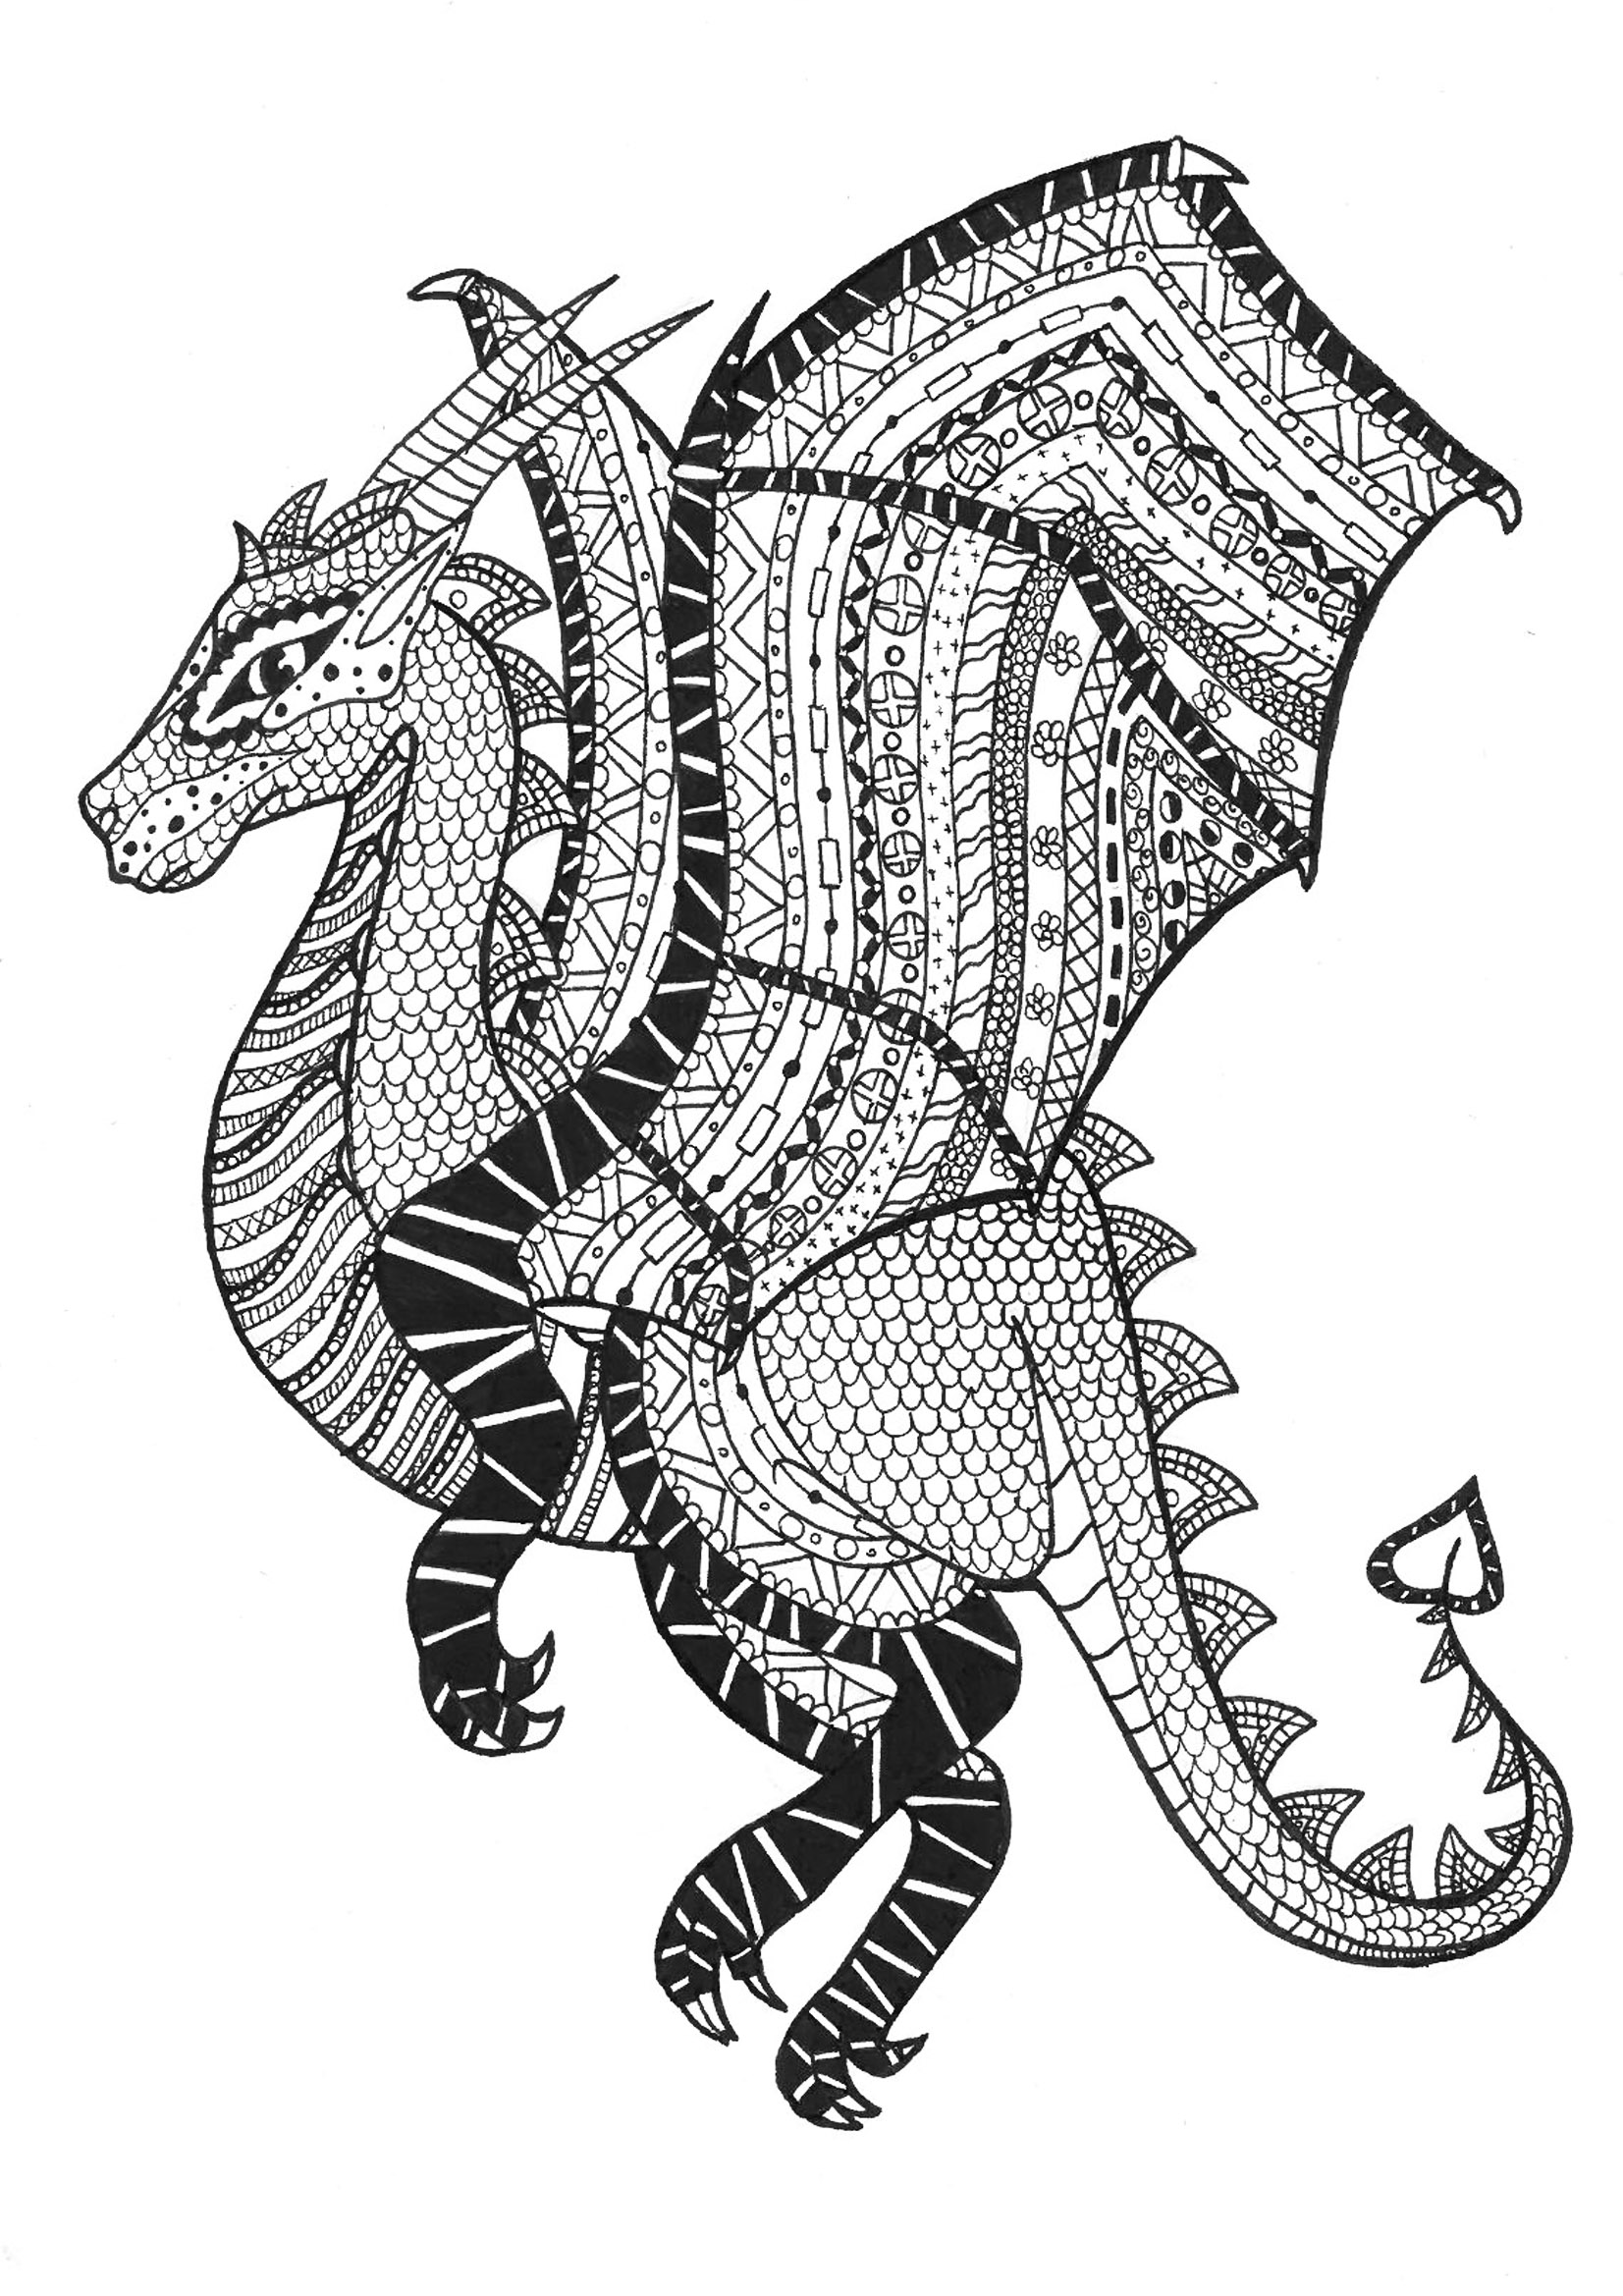 zentangle coloring pages free printable zentangle coloring pages the sun flower pages zentangle coloring pages printable free